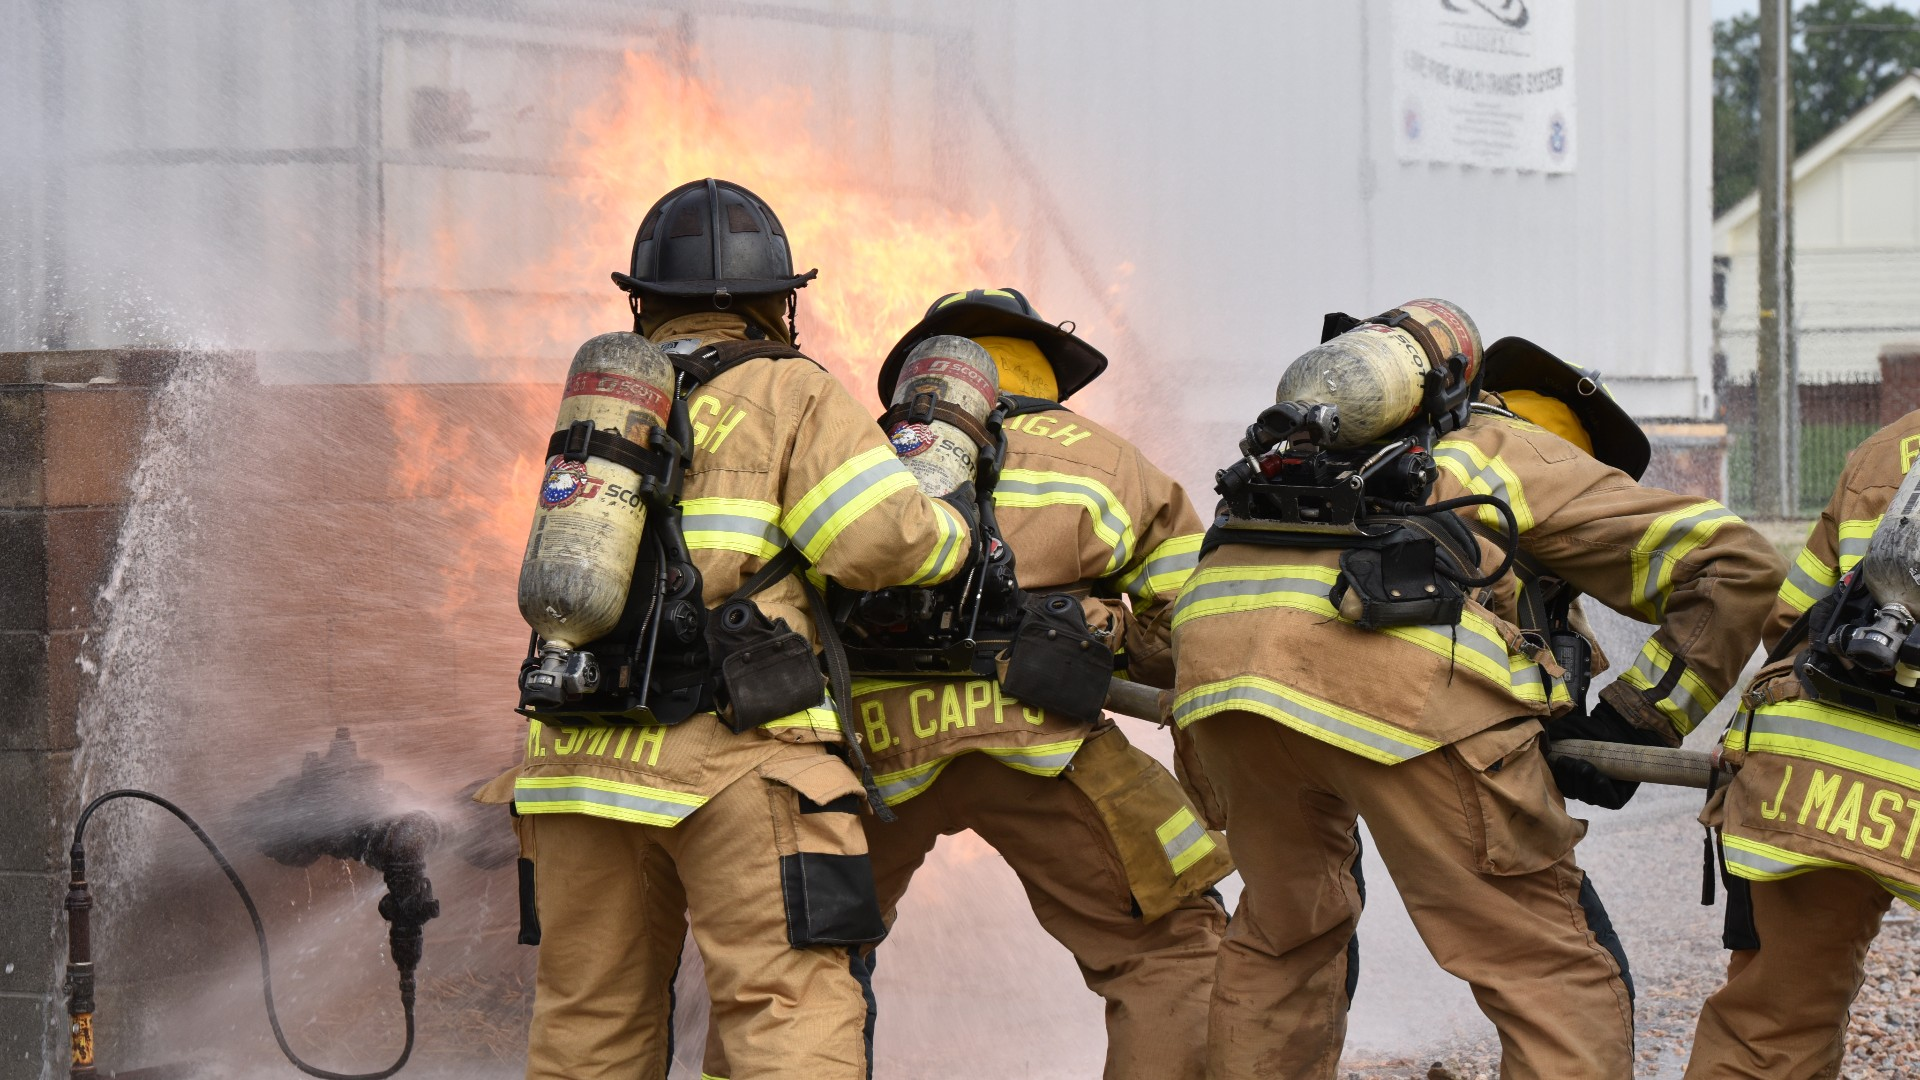 Firefighter recruits putting out blaze at training center